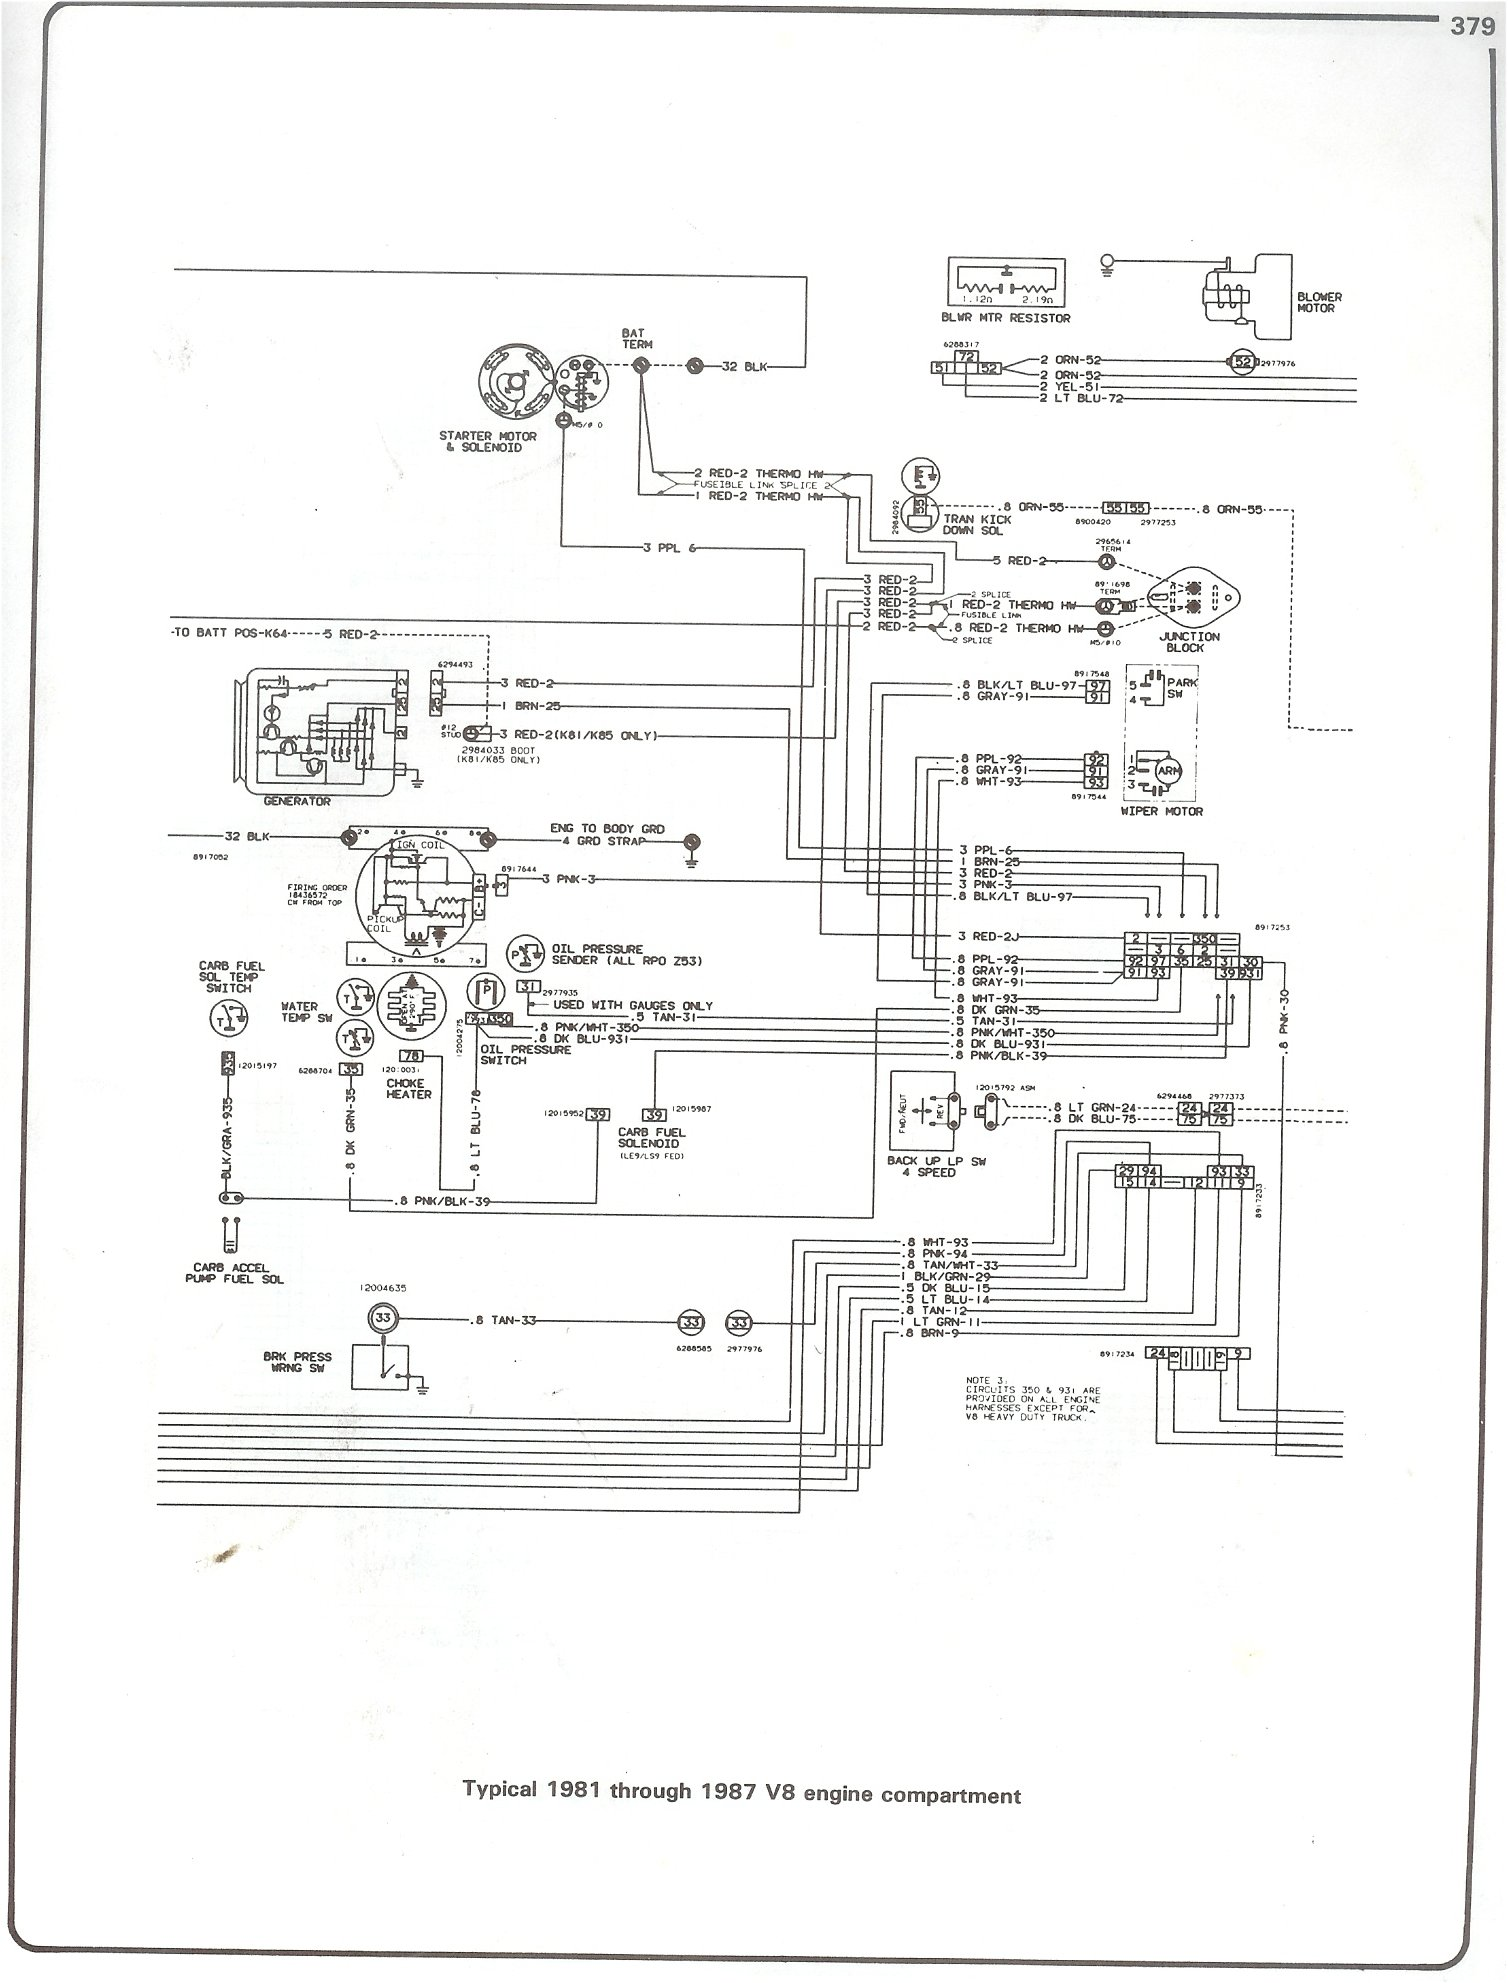 81 87_V8_engine complete 73 87 wiring diagrams